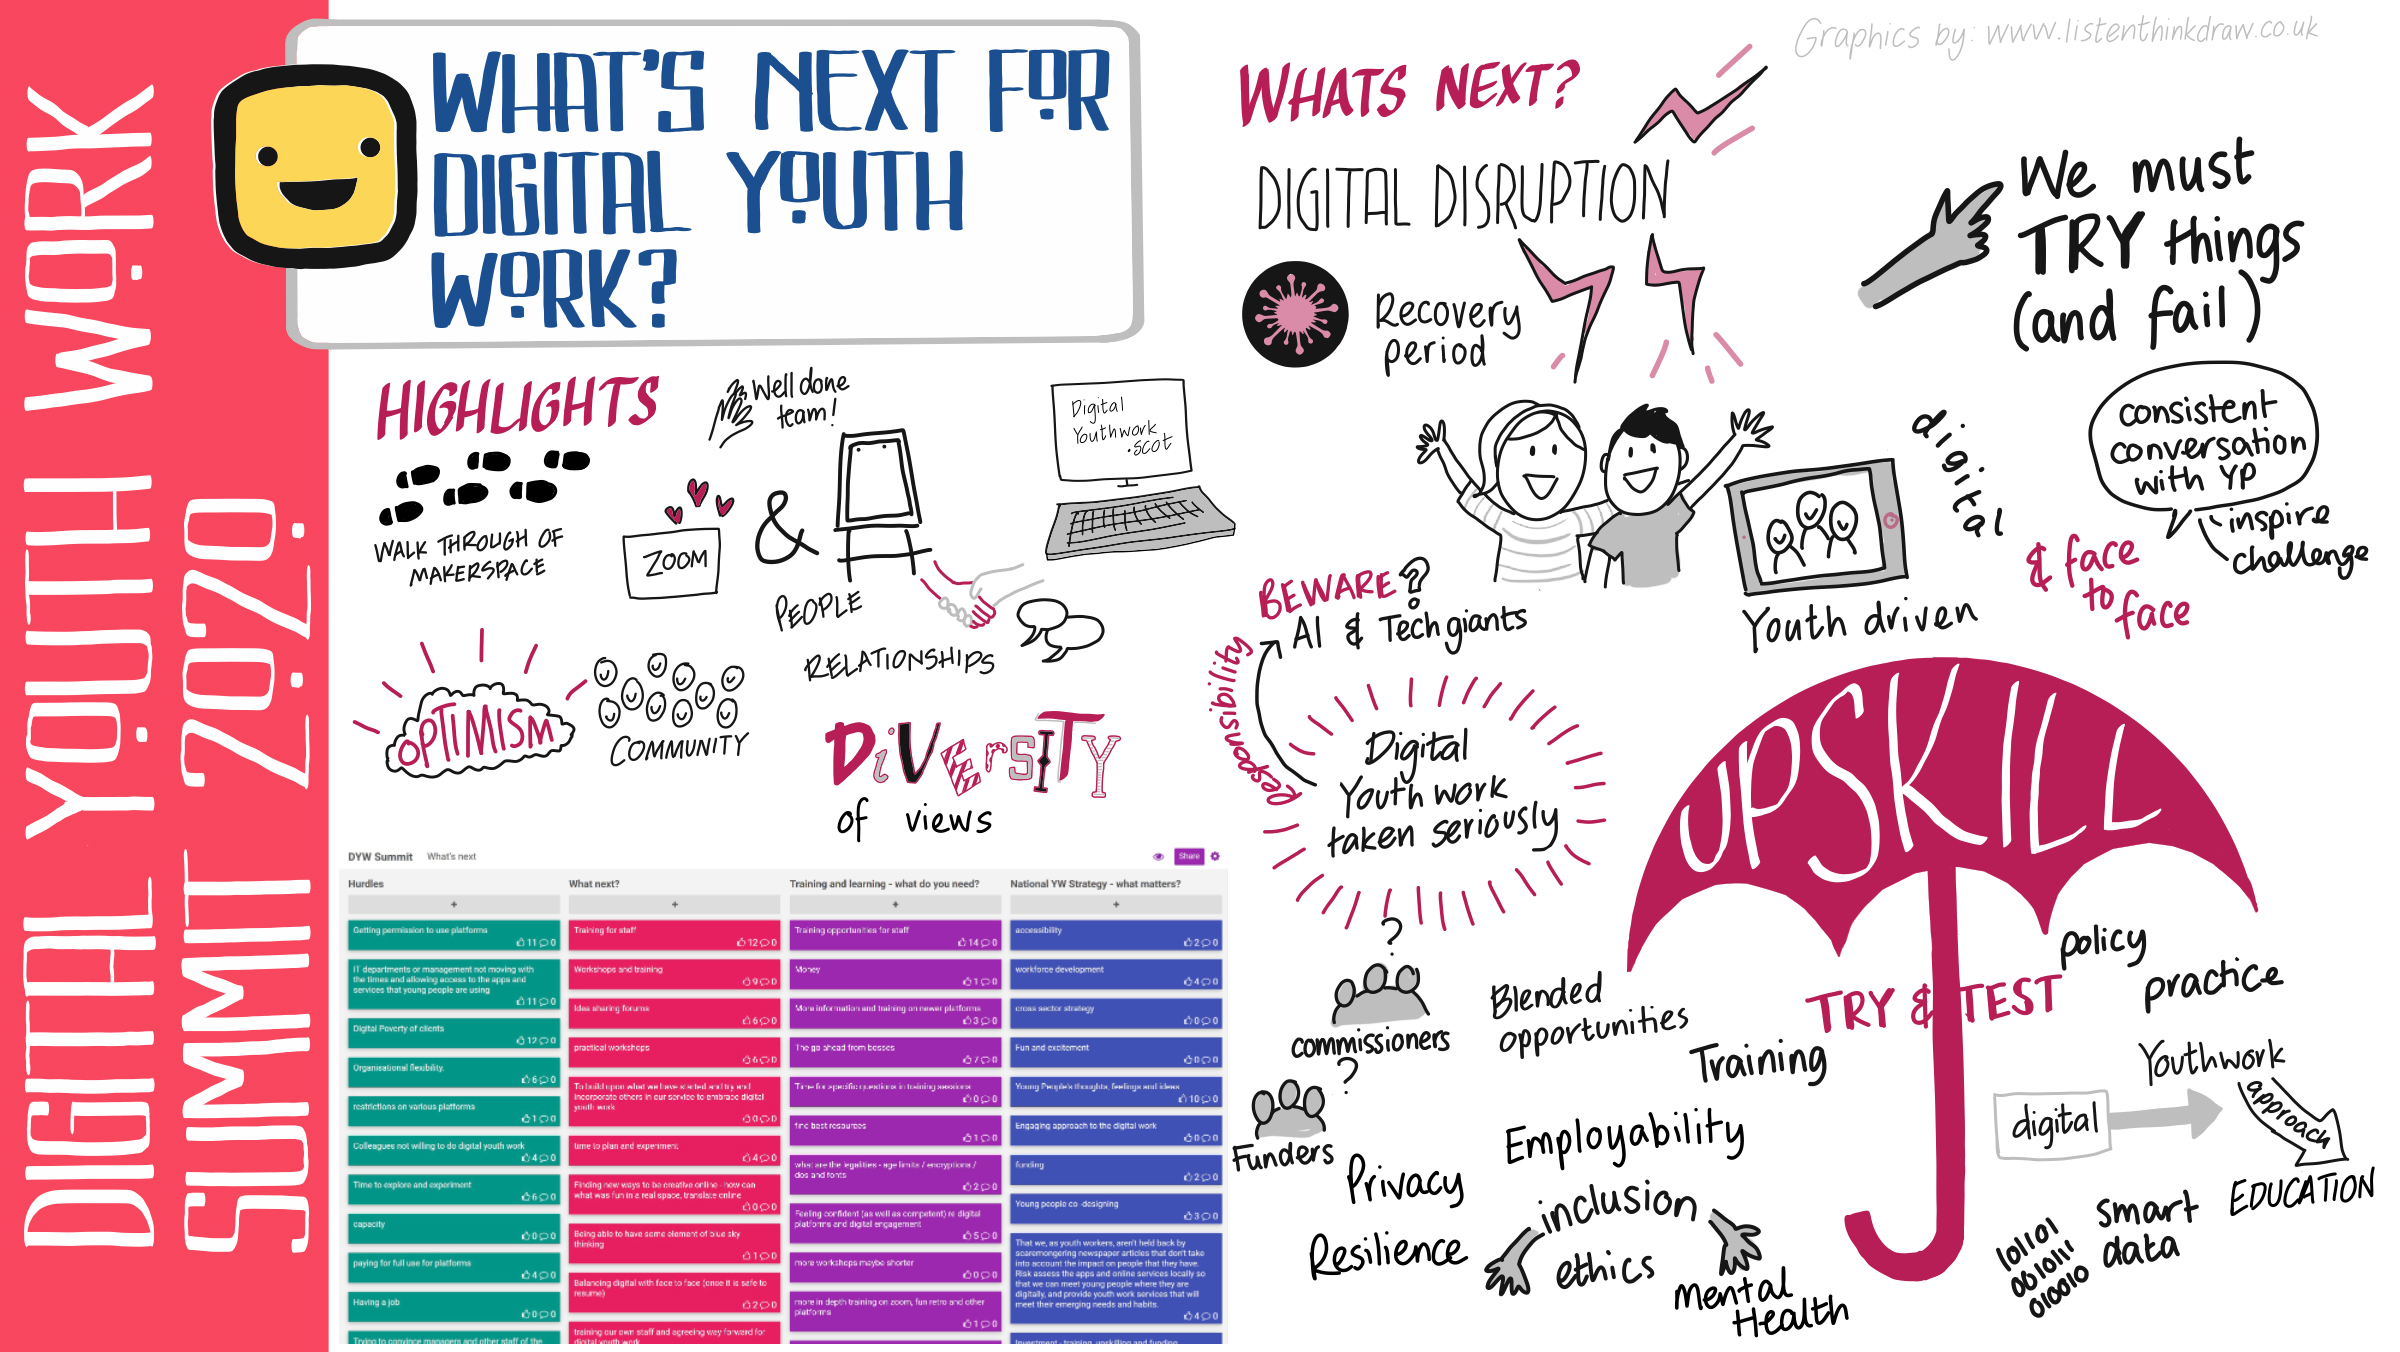 What's Nect for Digital Youth Work artwork